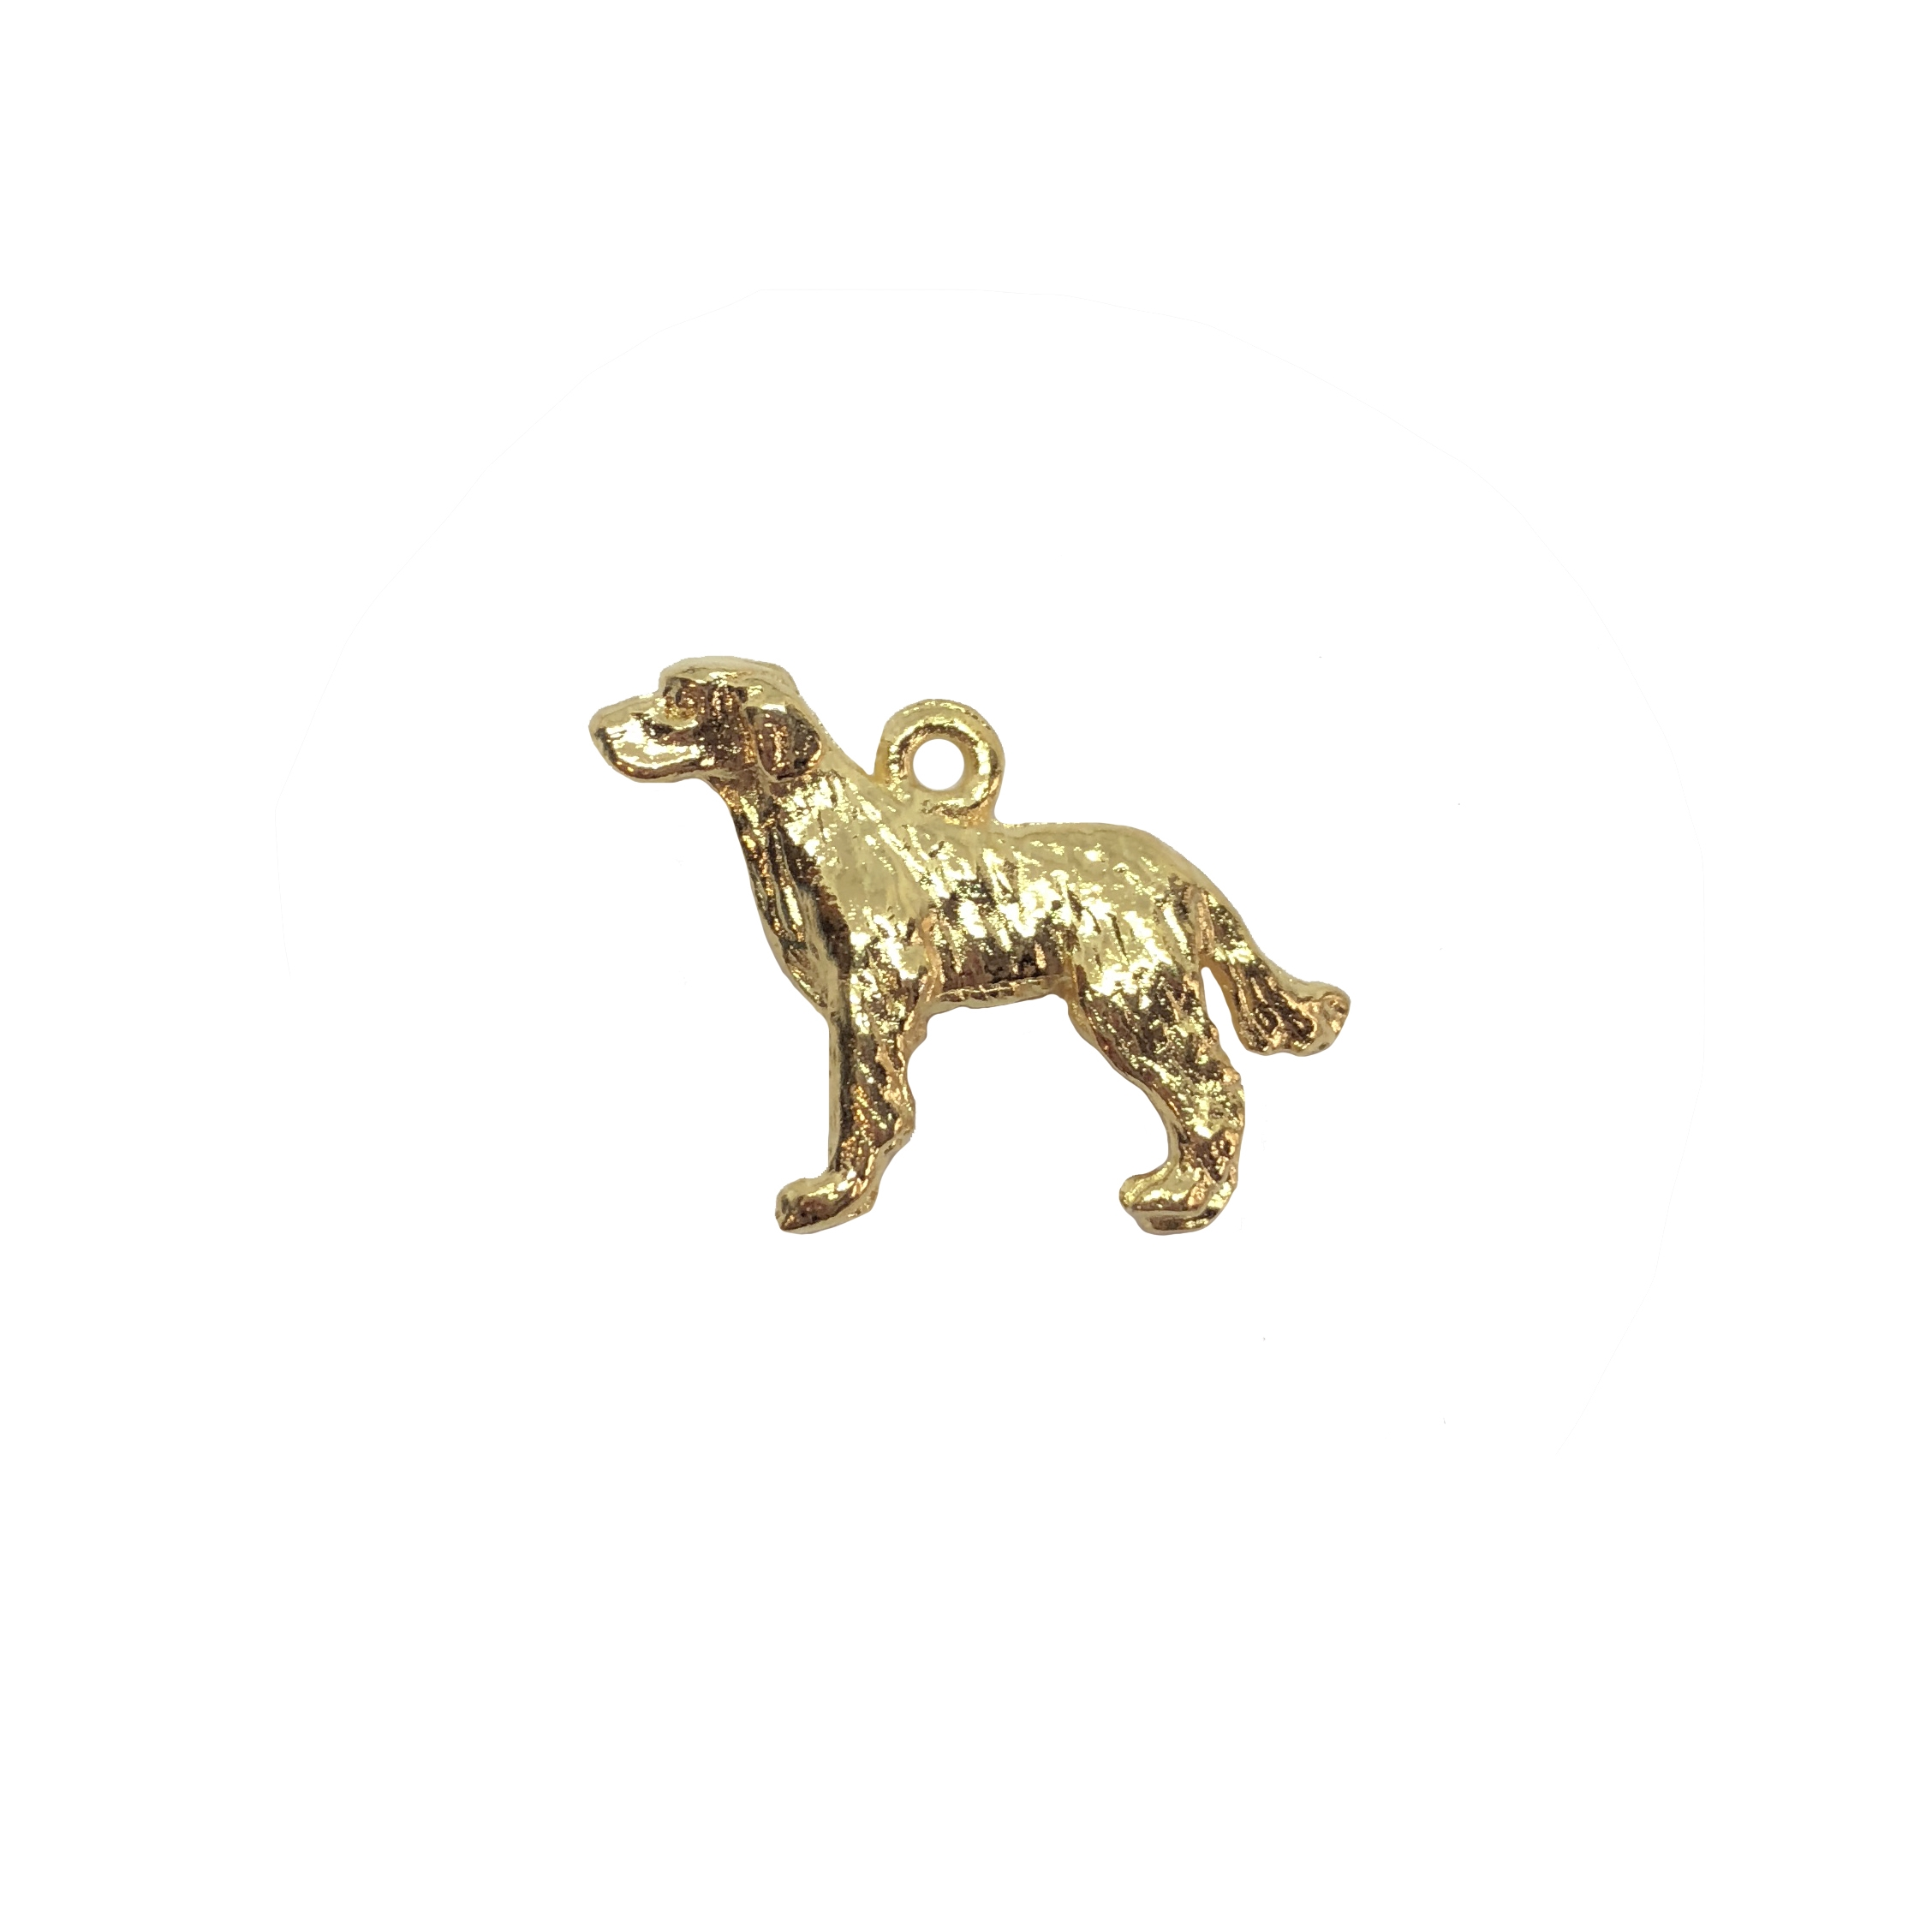 Labrador retriever charm, 22K gold finish pewter, B'sue by 1928, jewelry charm, dog stamping, dog, dog charm, charm, Labrador, gold, lead free pewter, gold finish, US made, designer jewelry, vintage supplies, B'sue Boutiques, 15x20mm, 08533